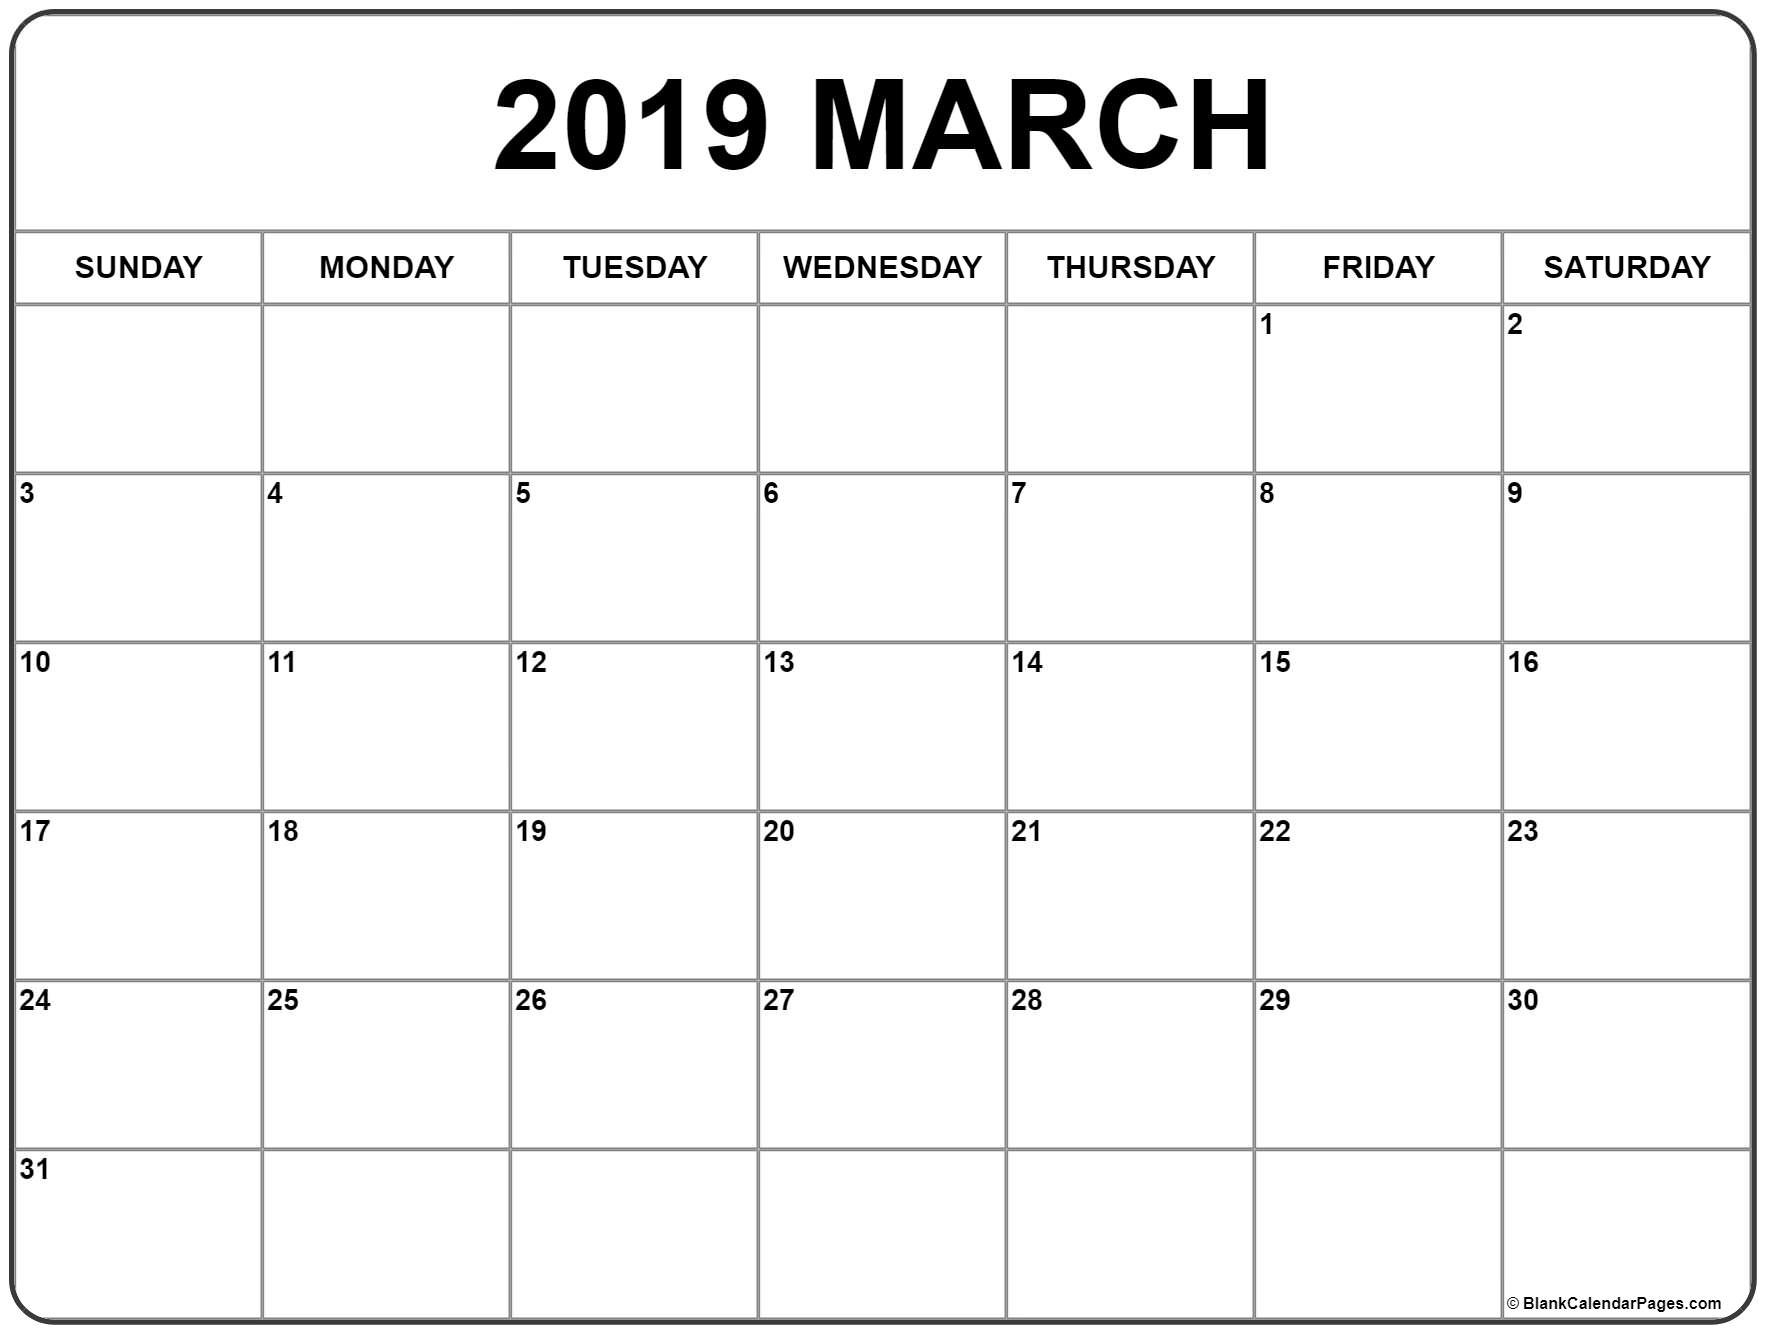 March 2019 Calendar | 56+ Templates Of 2019 Printable Calendars March 2 2019 Calendar